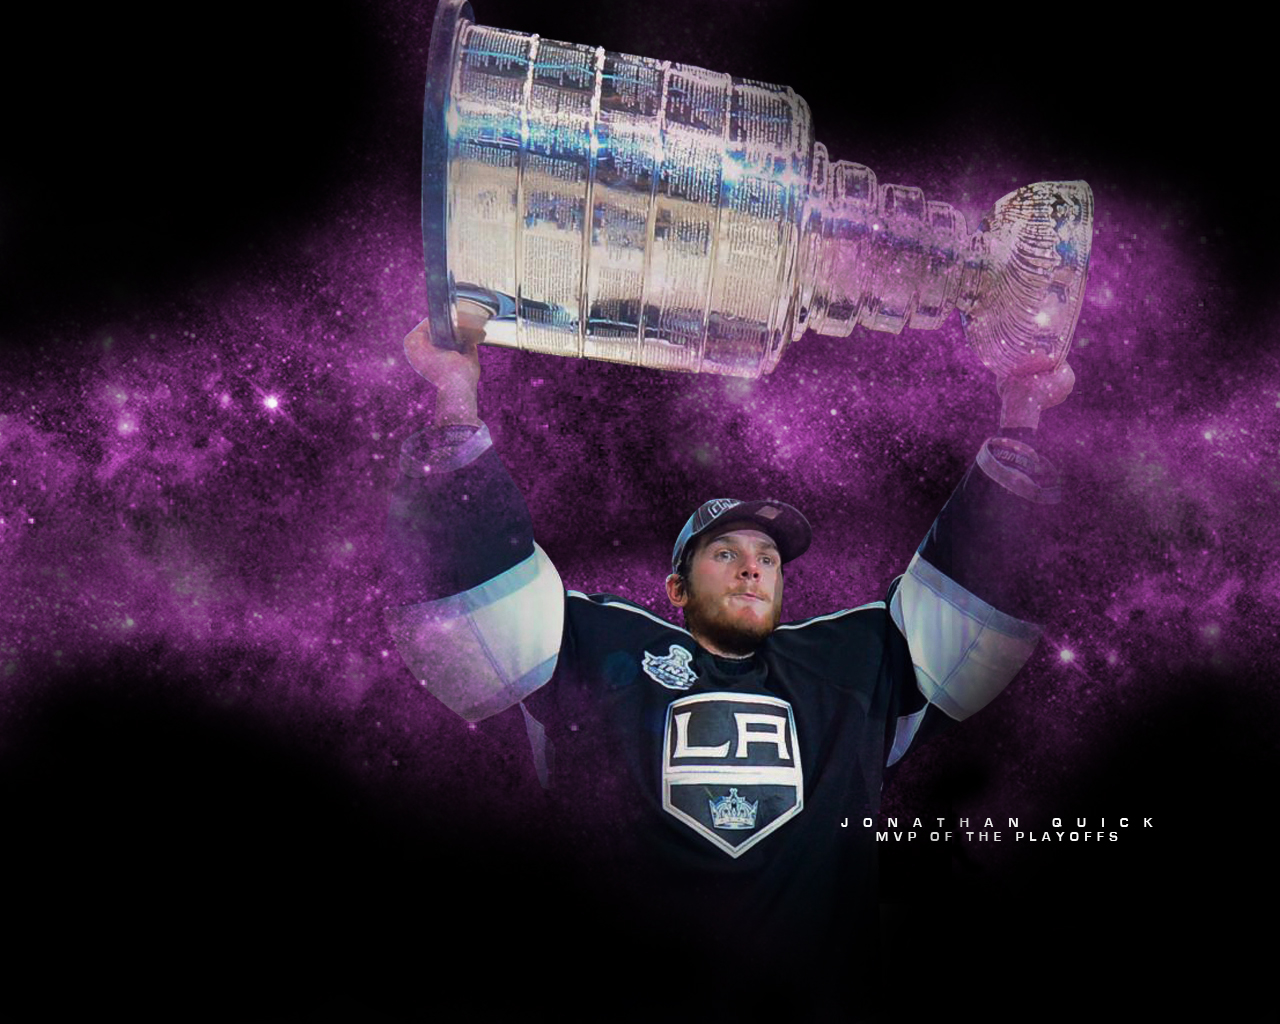 jonathan quick mvp kings stanley cup champion wallpaper